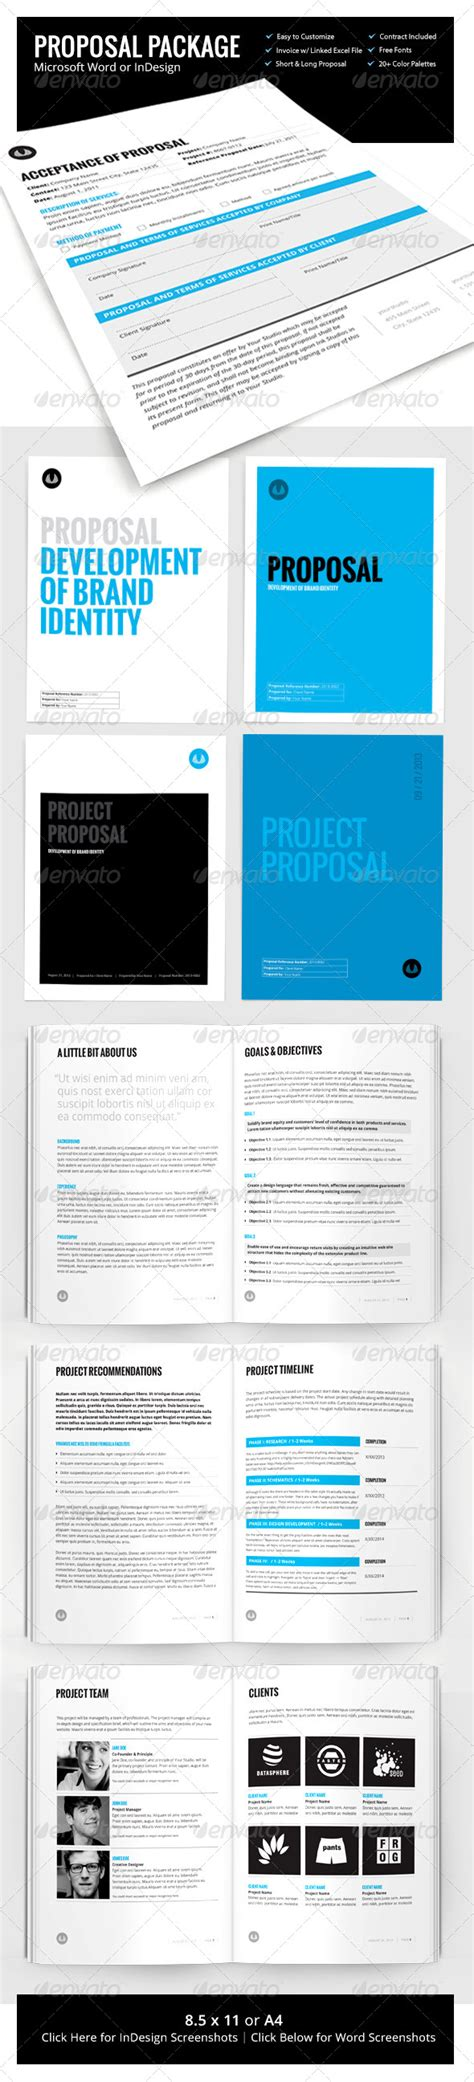 30 page template w contract invoice